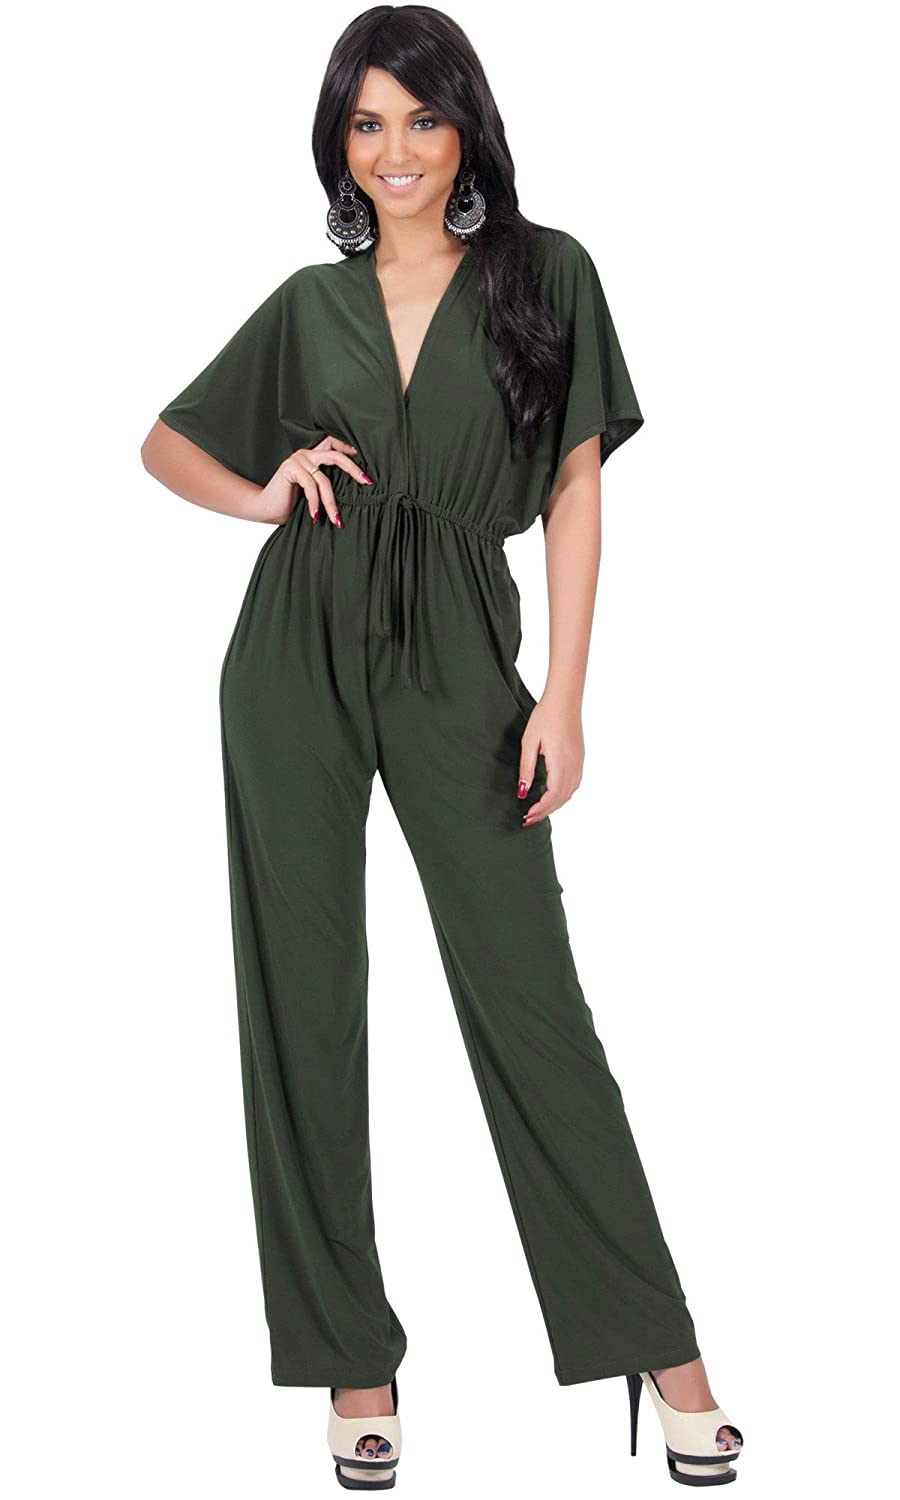 4a65c6c08089 Amazon.com  KOH KOH Womens Short Kimono Sleeve One Piece Jumpsuit Cocktail  Romper Pant Suit  Clothing